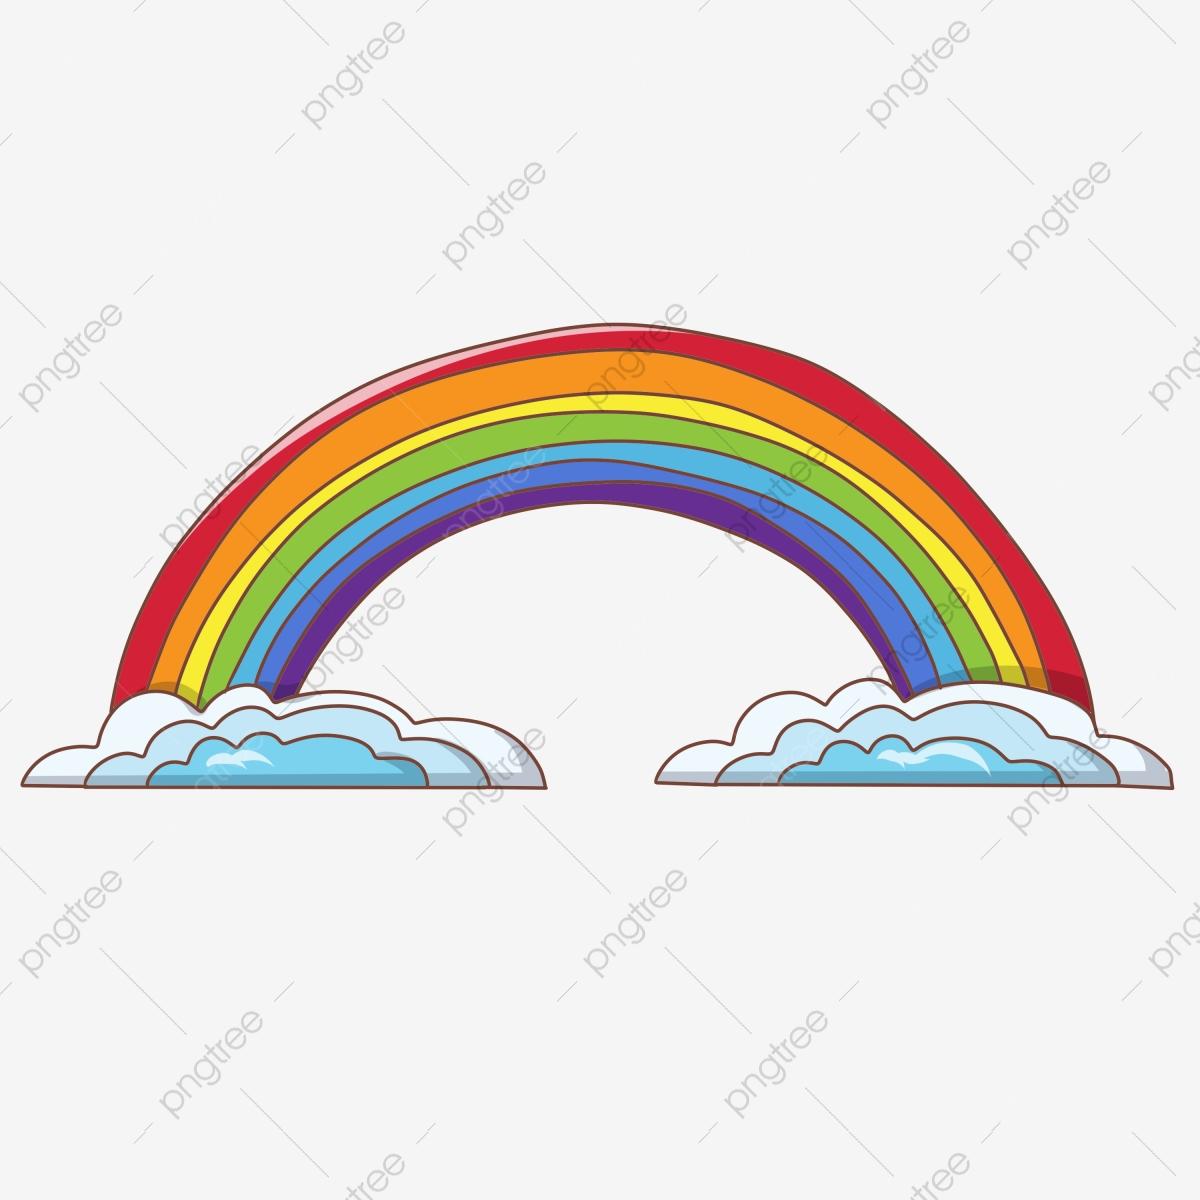 Cartoon Rainbow Illustration Drawing Rainbow Lines Blue Clouds Clouds Png Transparent Clipart Image And Psd File For Free Download